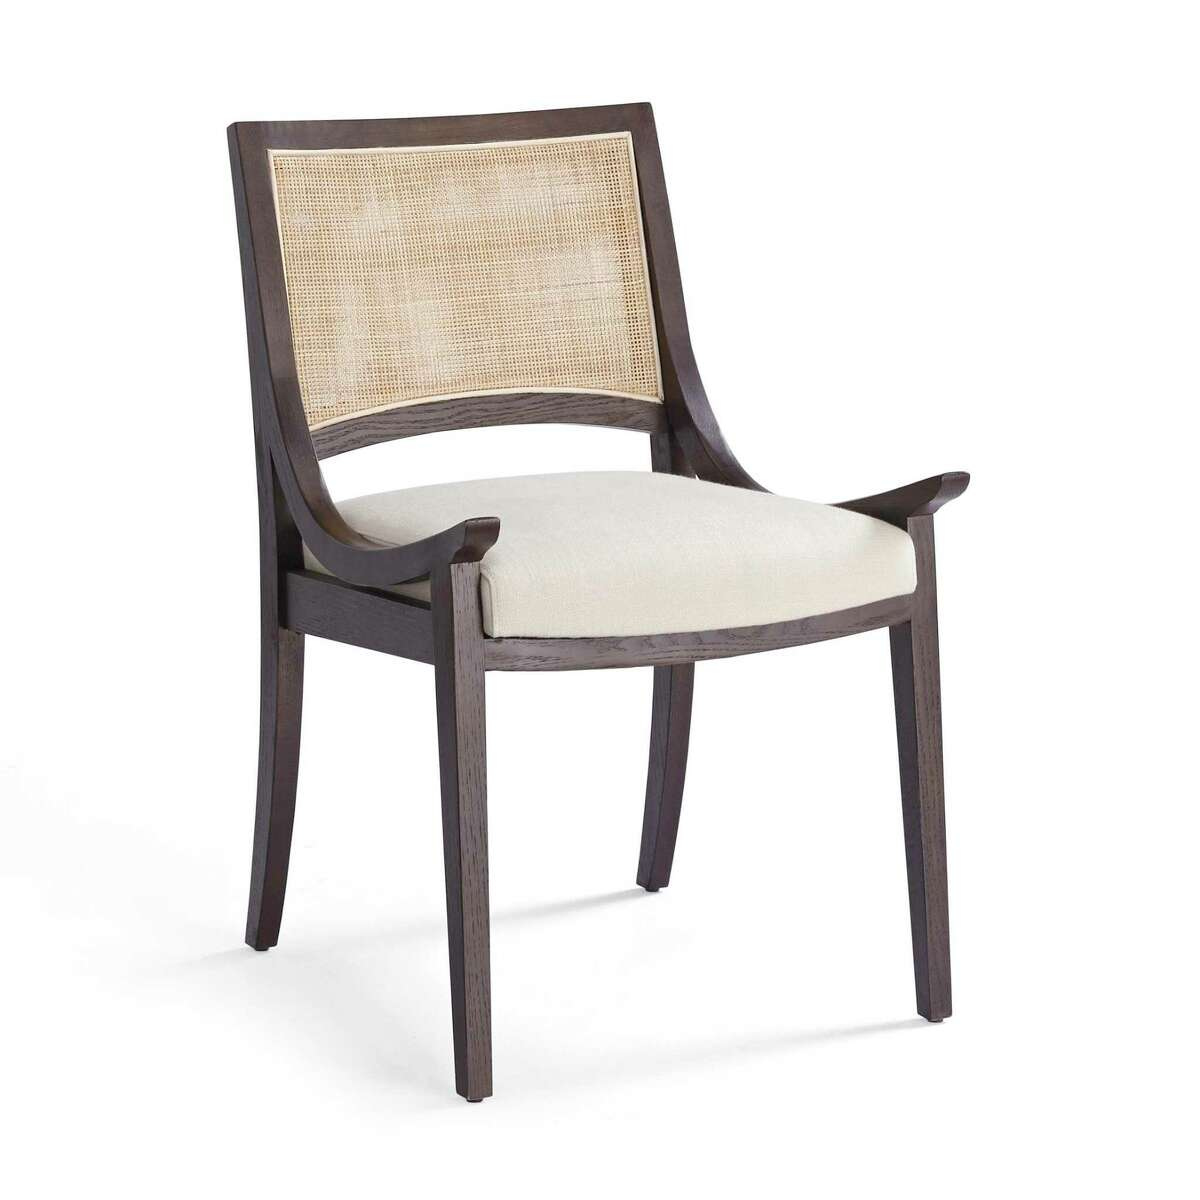 The newest design from Frontgate is the Whitman dining chair, an oak frame with low-swept arms, double-caned back and a seat of ivory linen performance fabric or forest green leather. $499-$599; frontgate.com